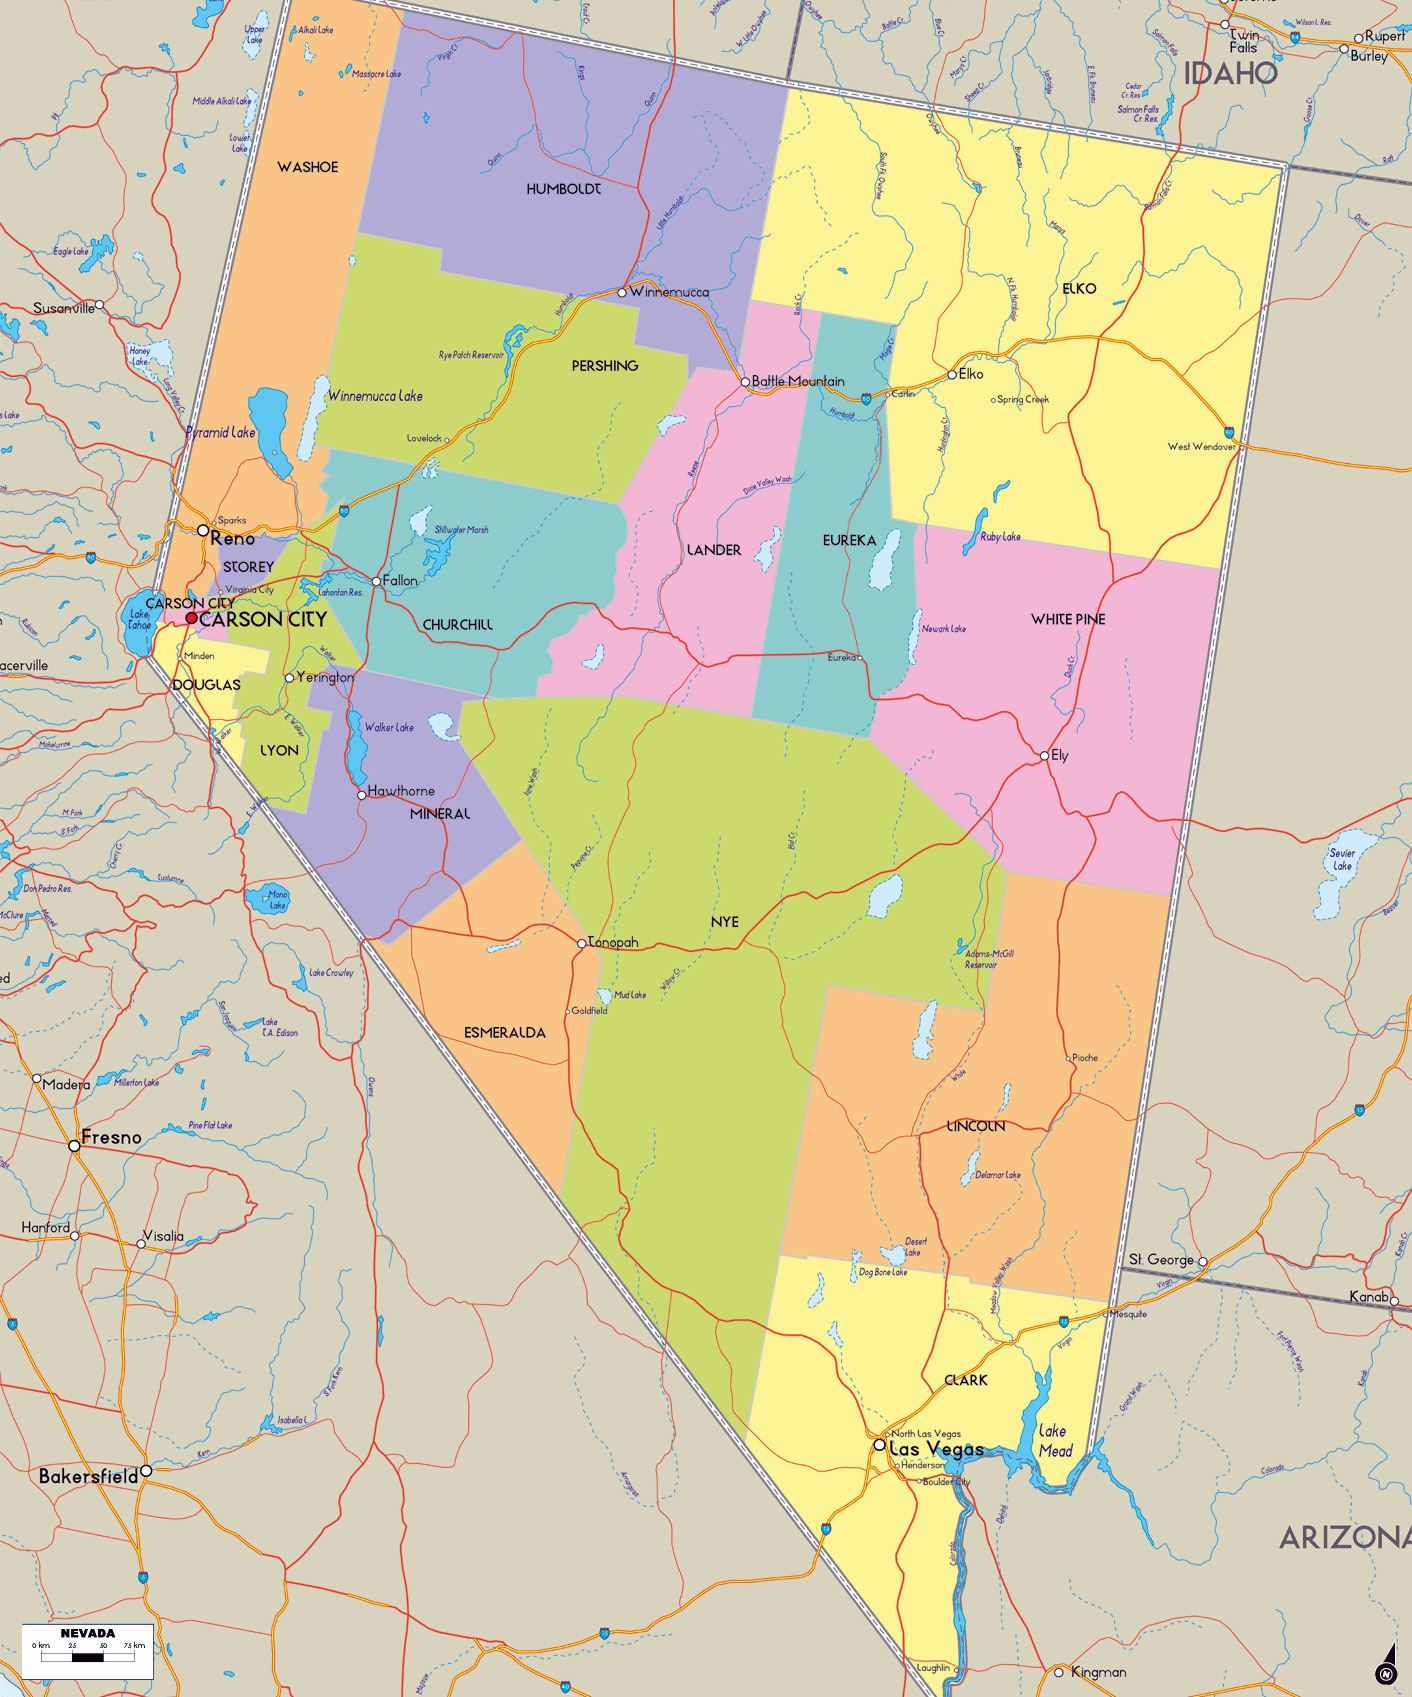 Map Of Arizona Nevada.Large Nevada Maps For Free Download And Print High Resolution And